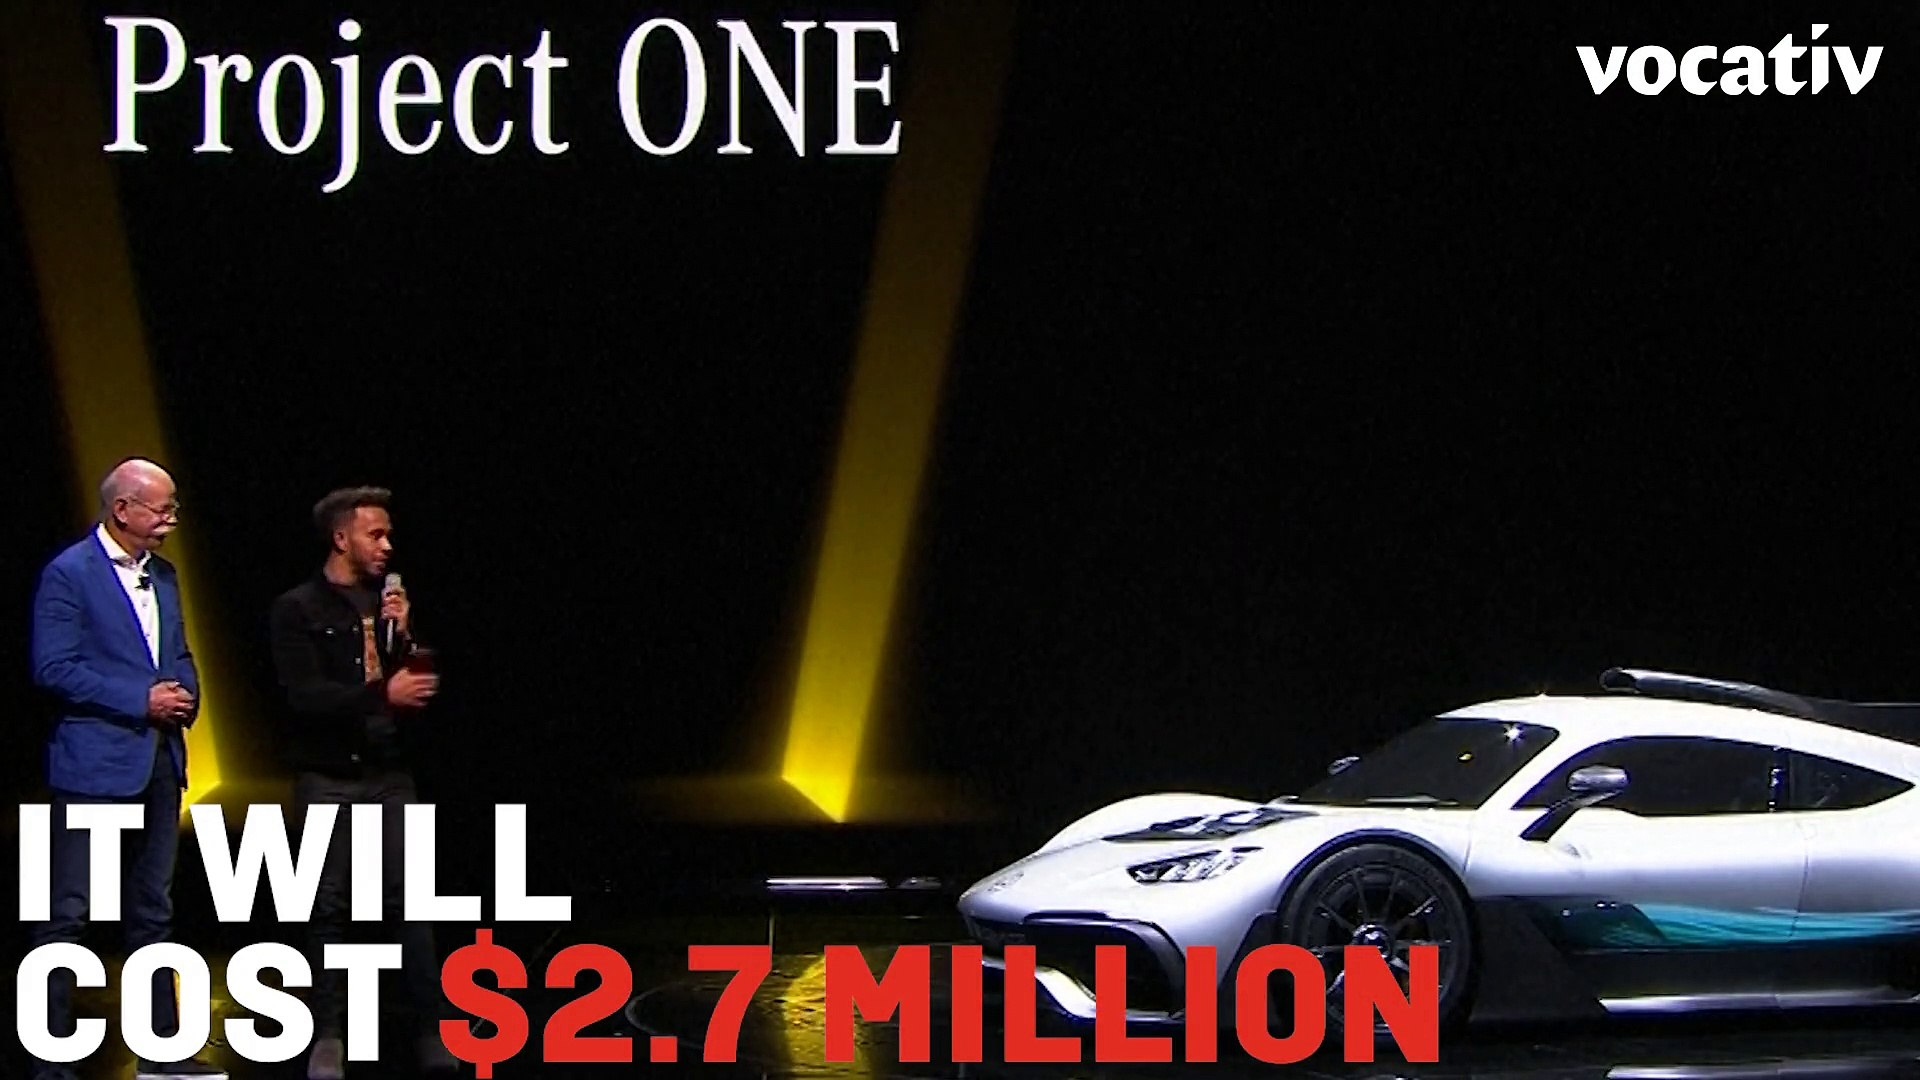 The 1,000+ Horsepower, 217+ mph, $2.7 Million, Street Legal Mercedes-AMG Project One